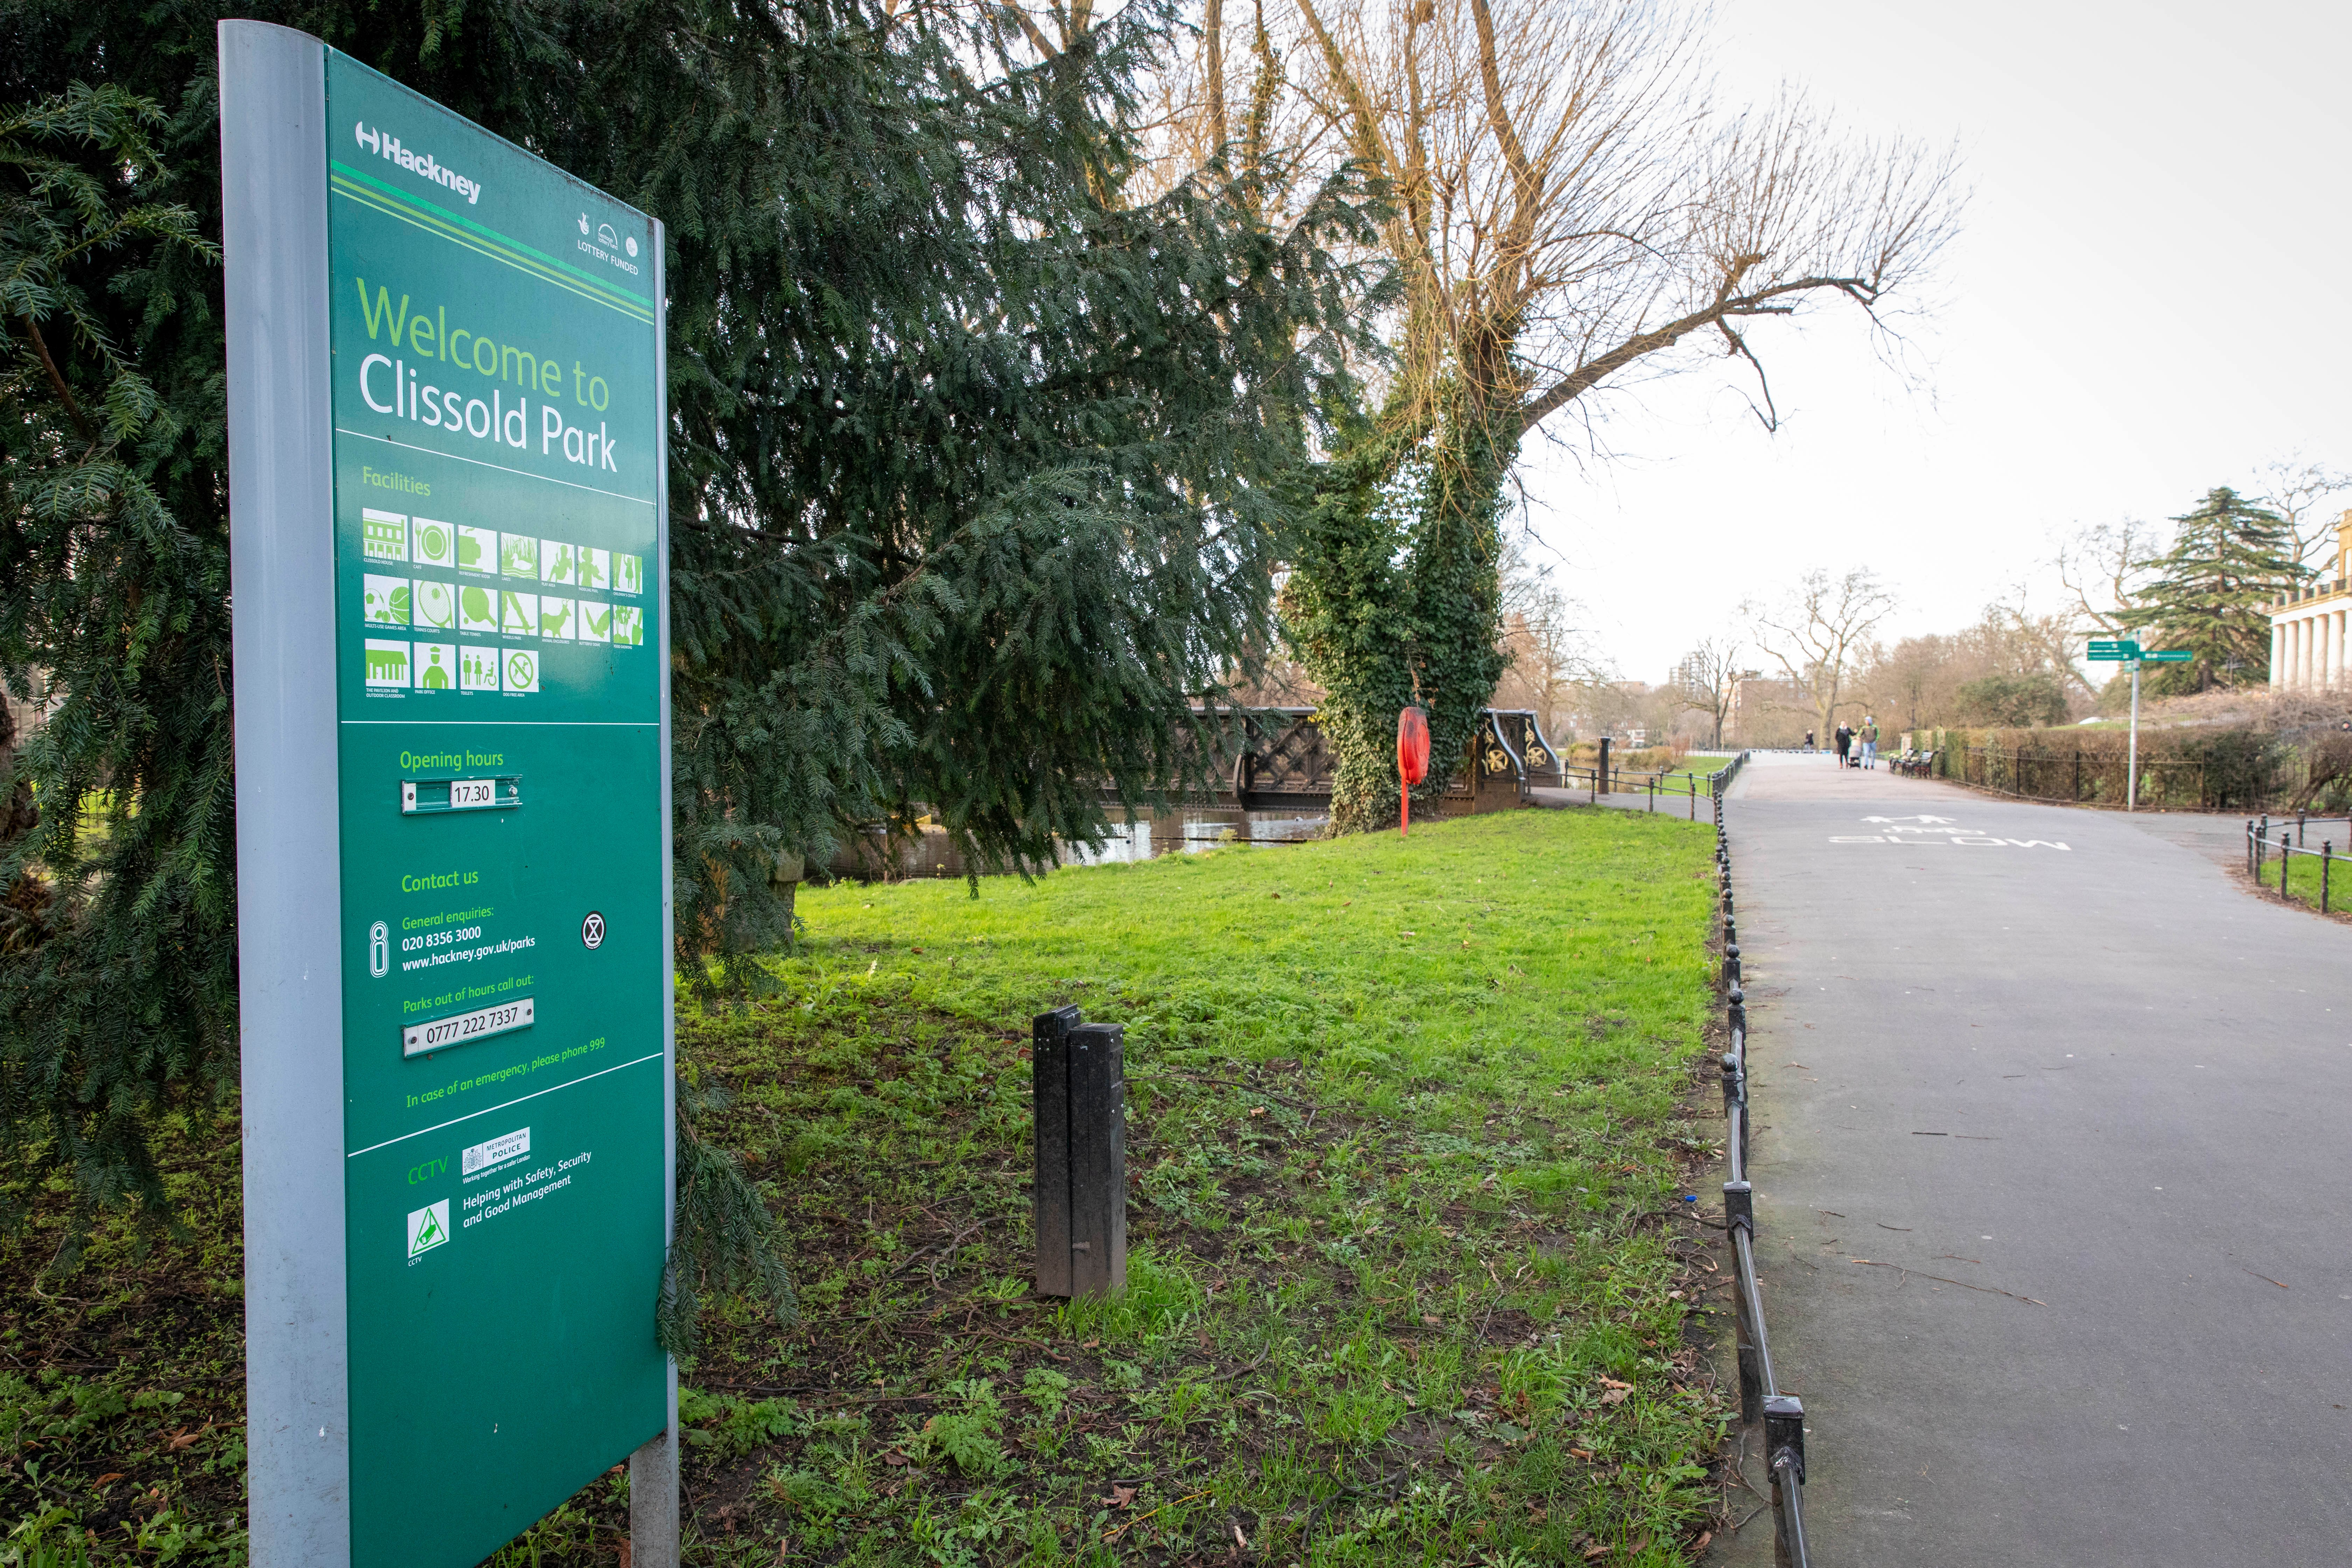 Mrs Corner said her son was mugged in Clissold Park in Stoke Newington